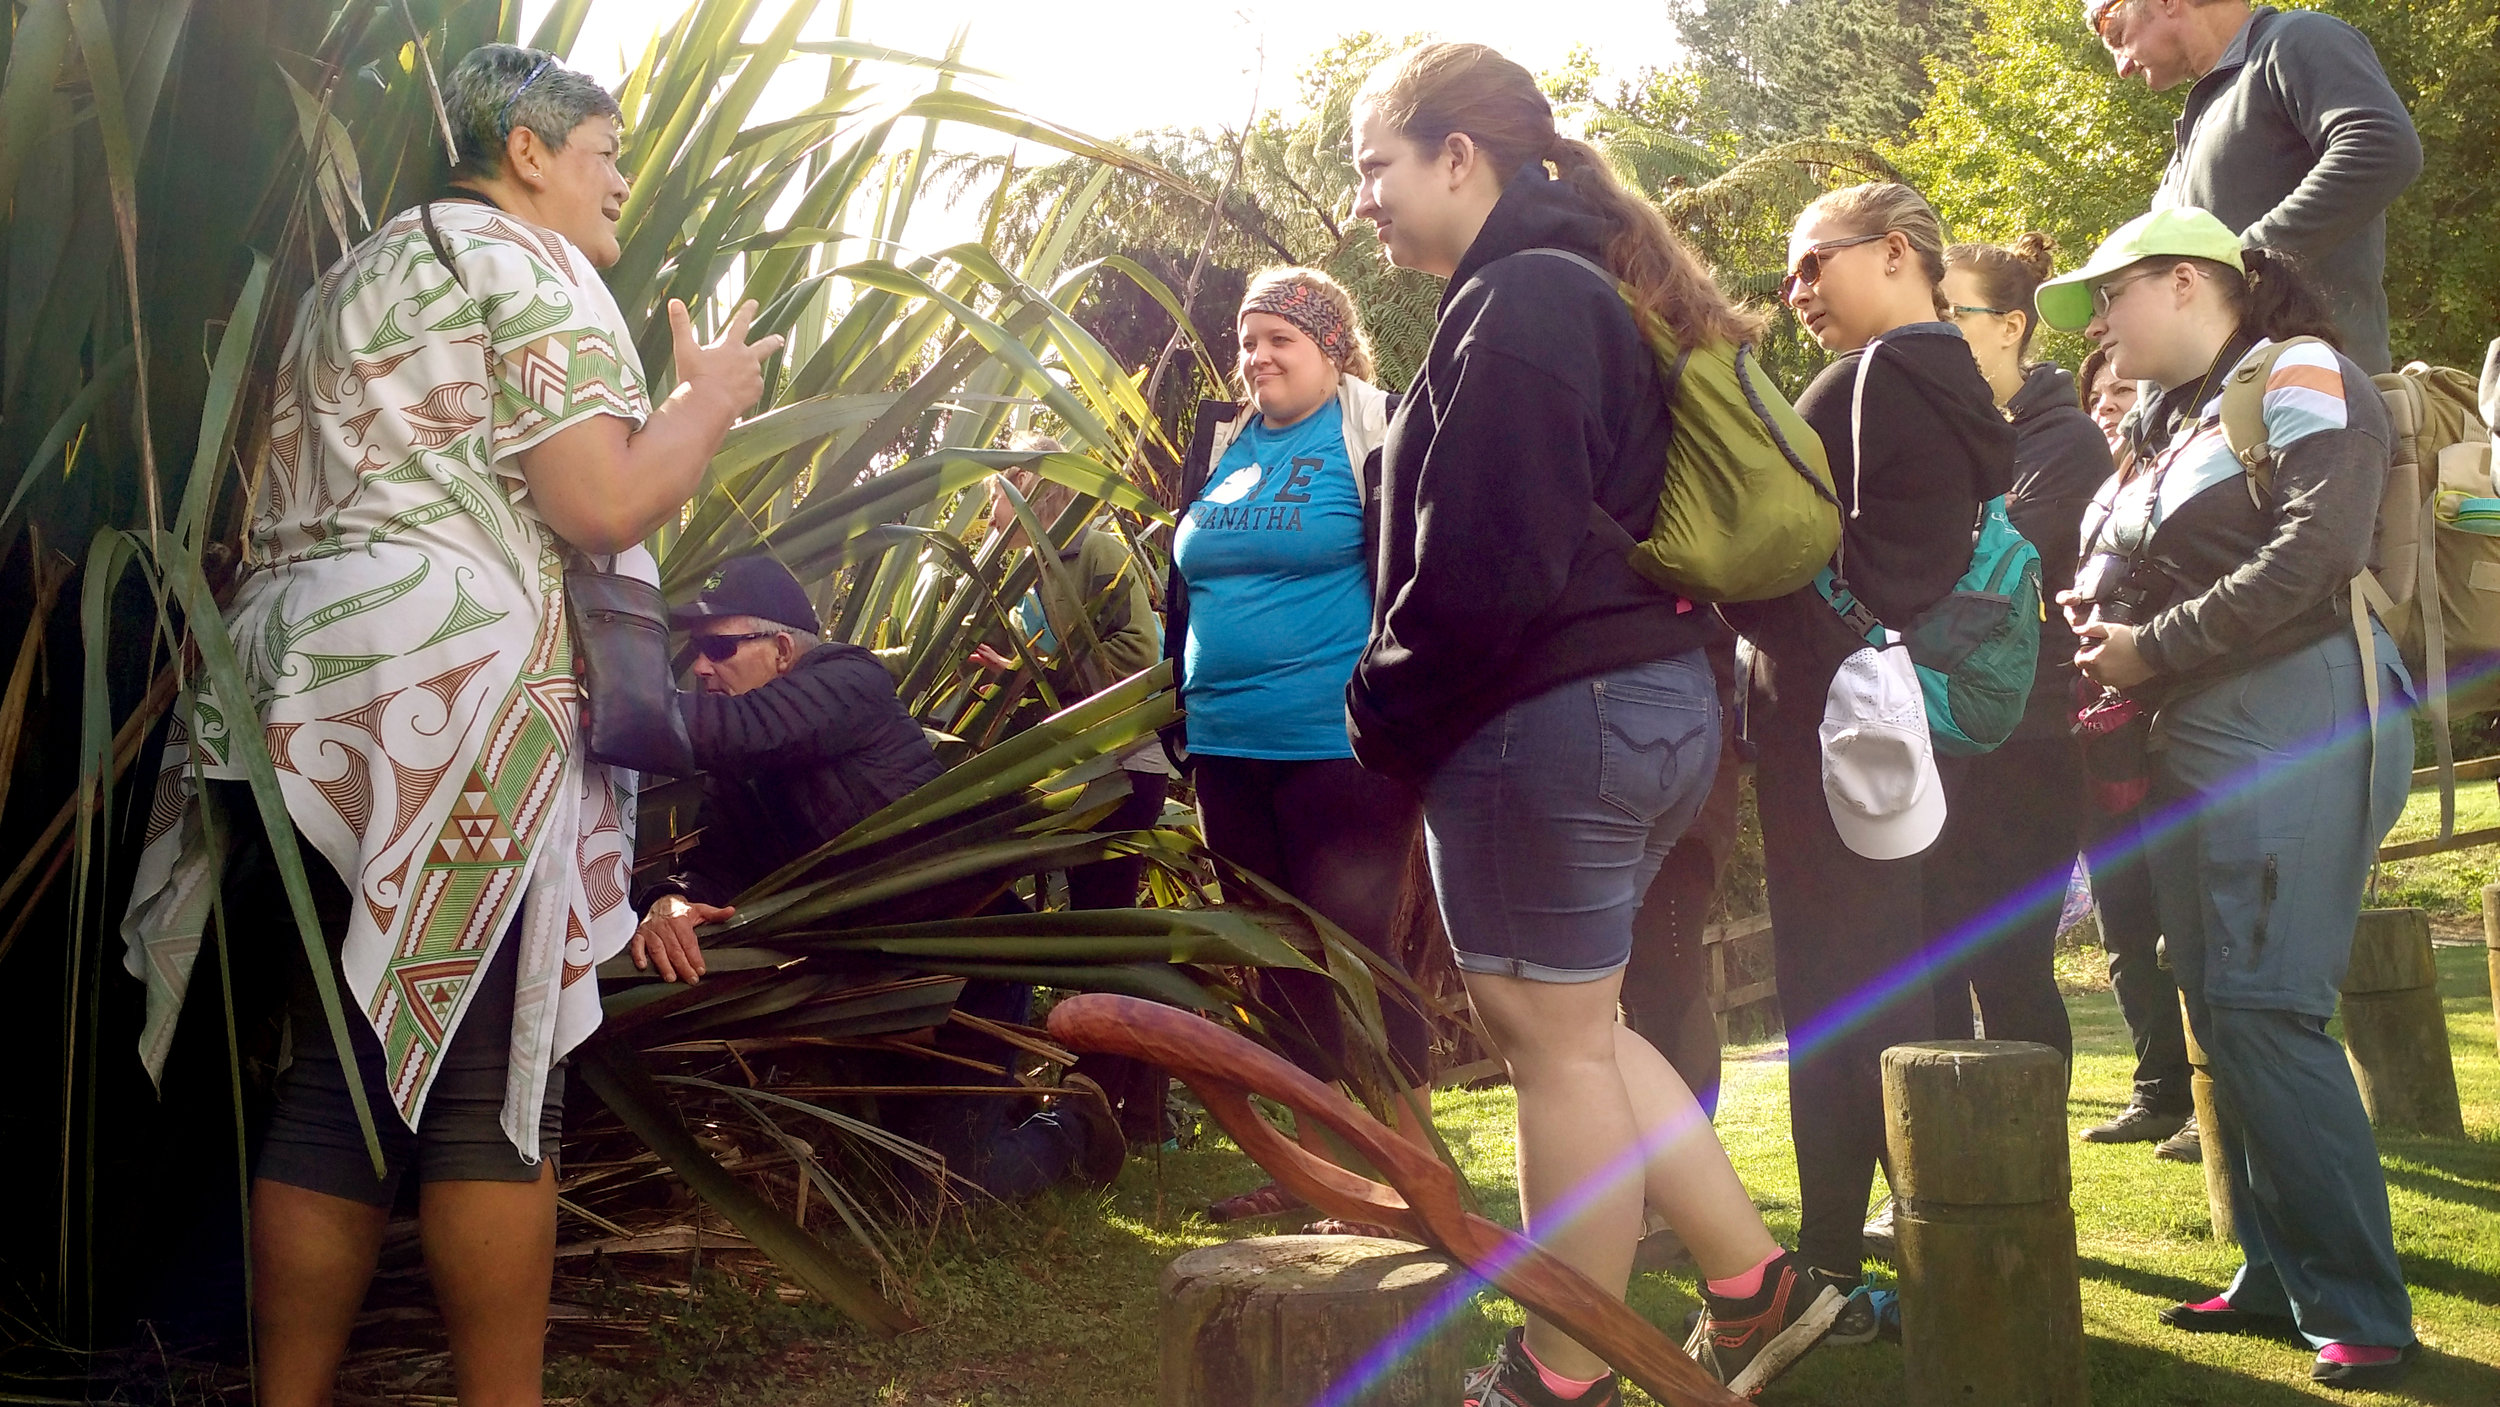 LAKE SUPERIOR STATE UNIVERSITY - HEALTH, BIOLOGY, CULTURE AND ECOLOGY PROGRAM 2019   Nursing & Biology students collaborated learning about the connections between the environment & human health, with an emphasis on the values & perspectives of indigenous Maori people. '   Gallery